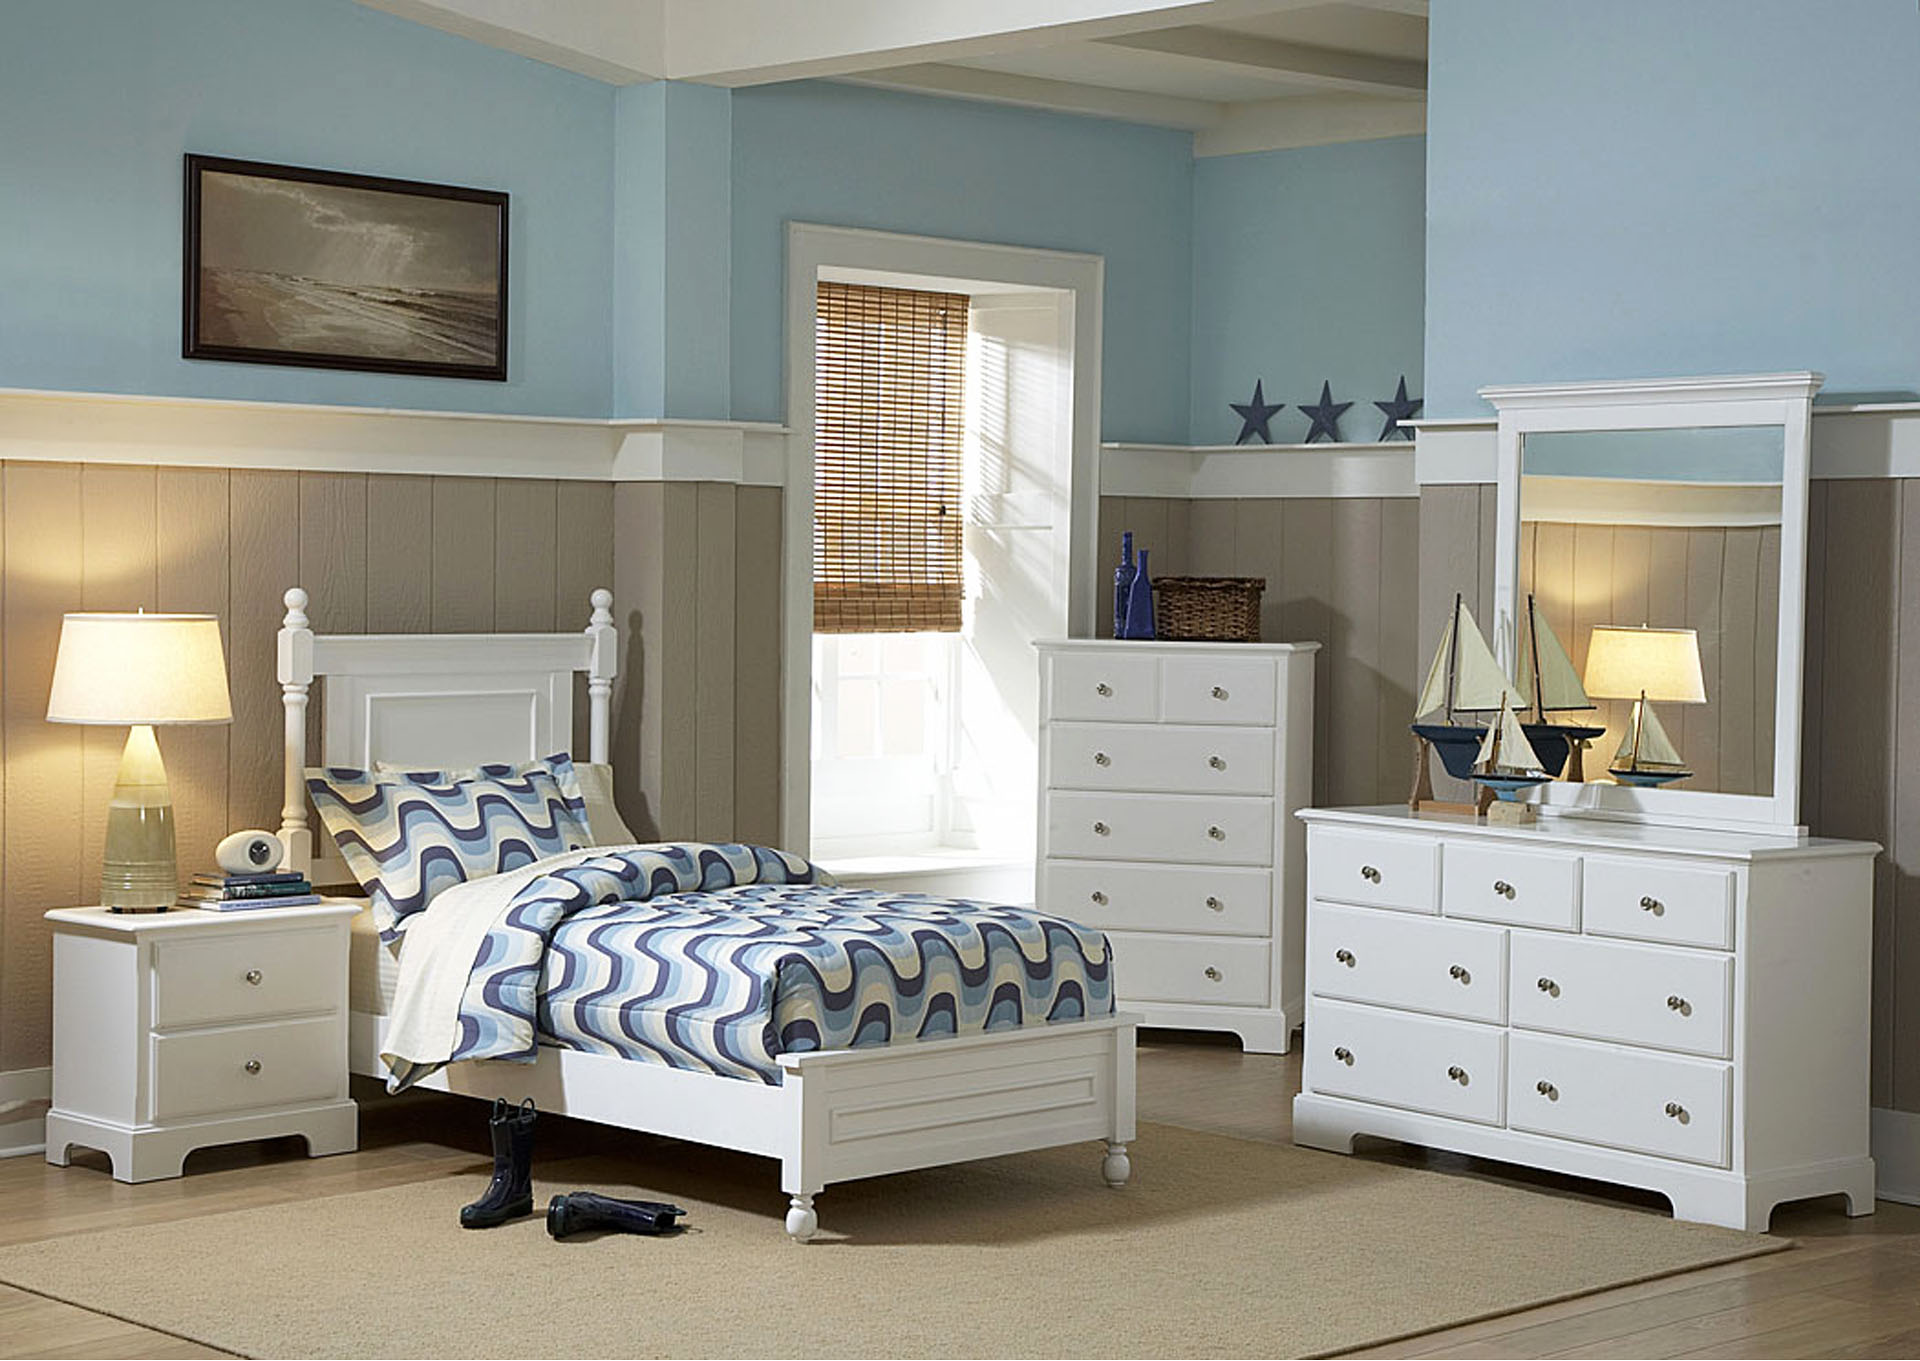 Morelle White Twin Platform Bed w/ Dresser, Mirror and Nightstand,Homelegance